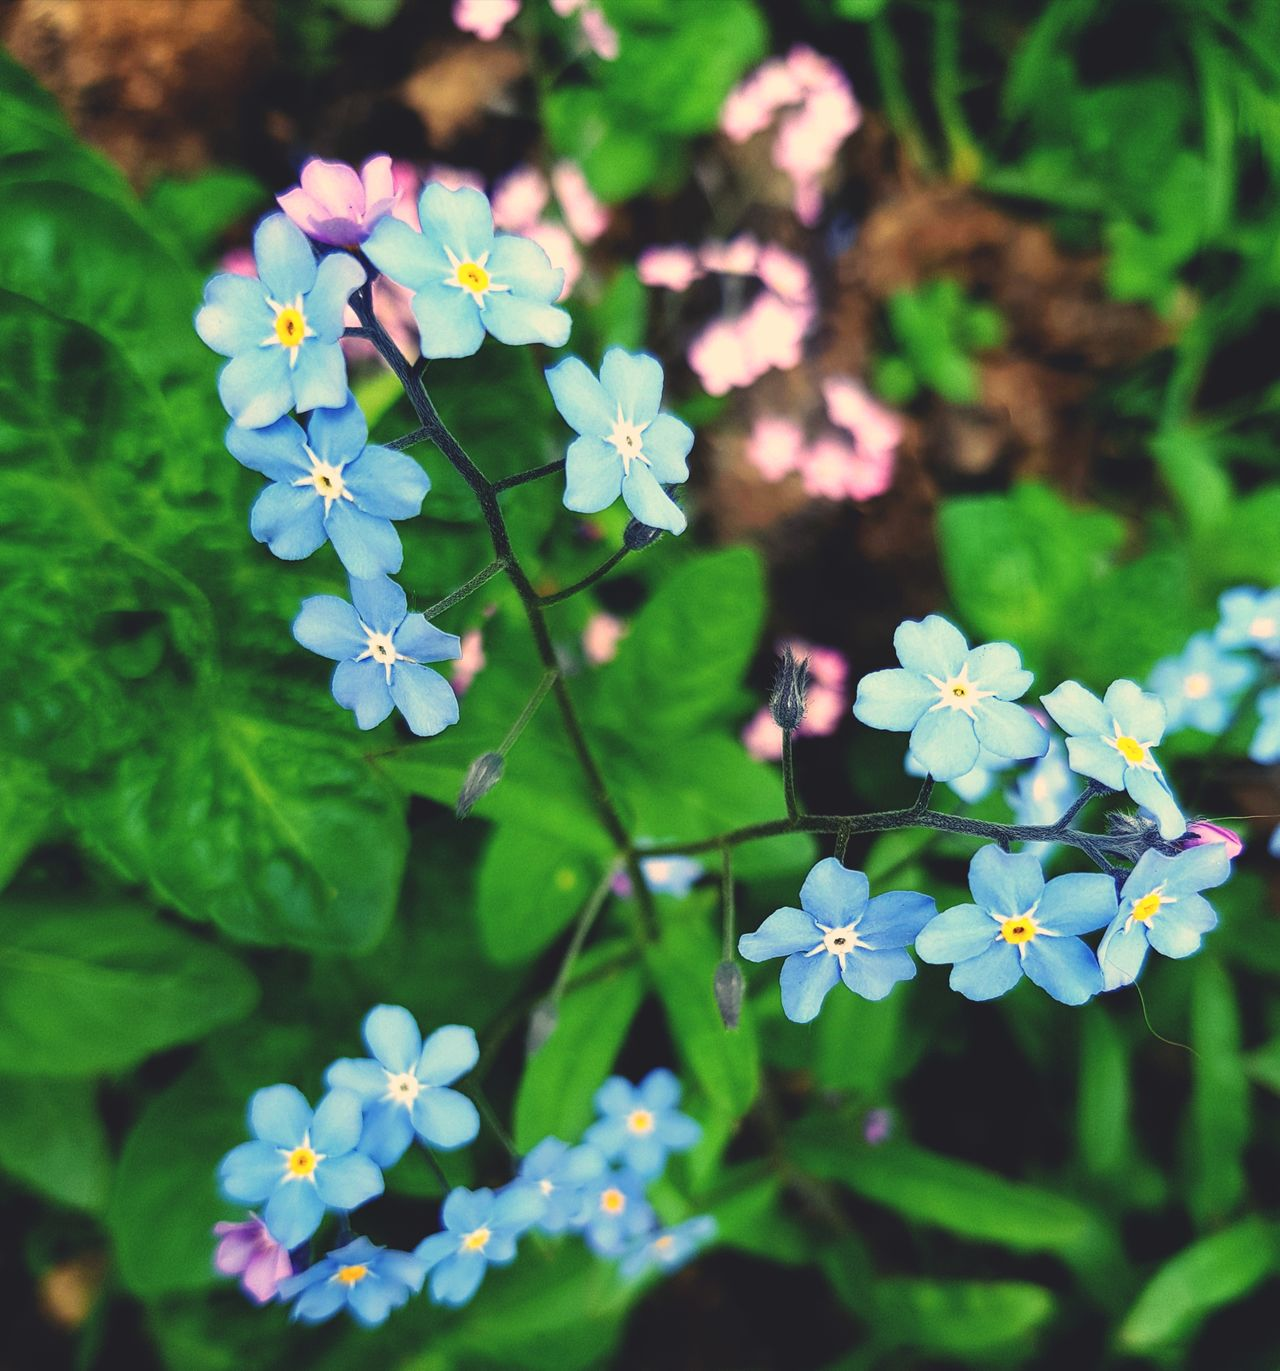 Nature Plant Beauty In Nature Outdoors Flower Leaf Day Close-up No People Fragility Growth Freshness Flower Head MYLIVE'❤ Moscow City Green Color Coloful Colors